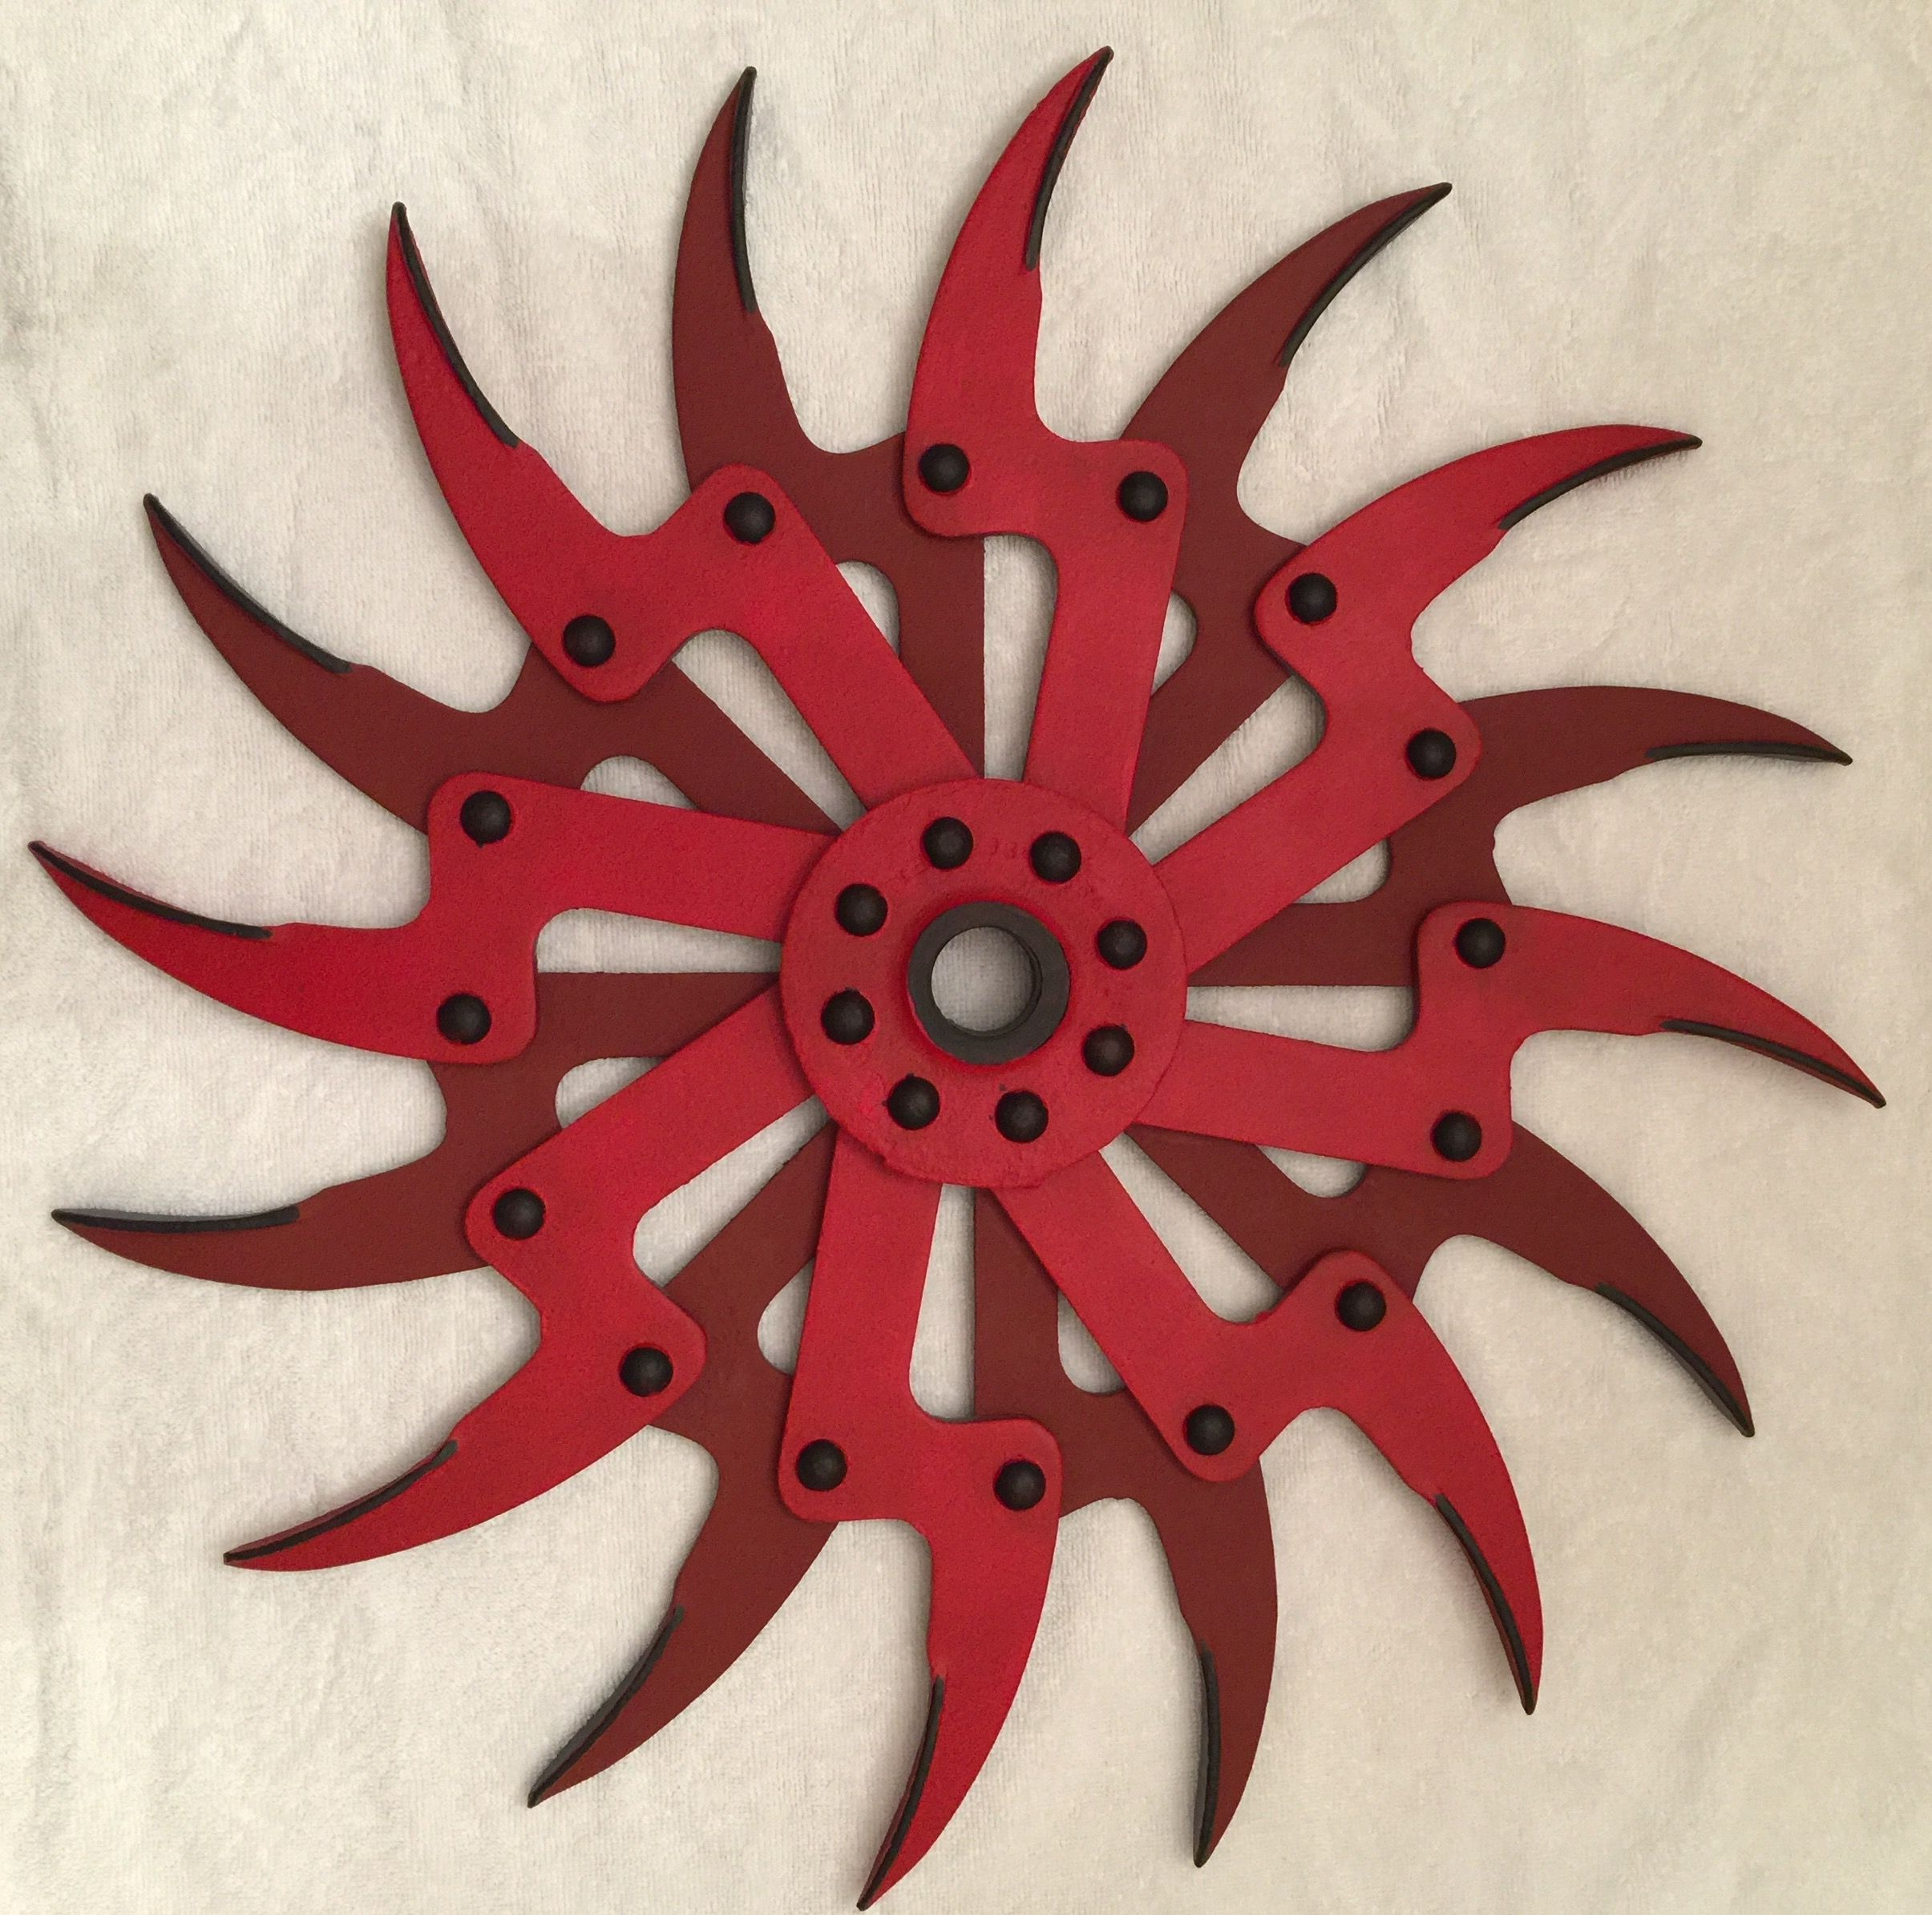 Hand Painted Rotary Hoe Tiller Wheel by Dennis R. Robinson